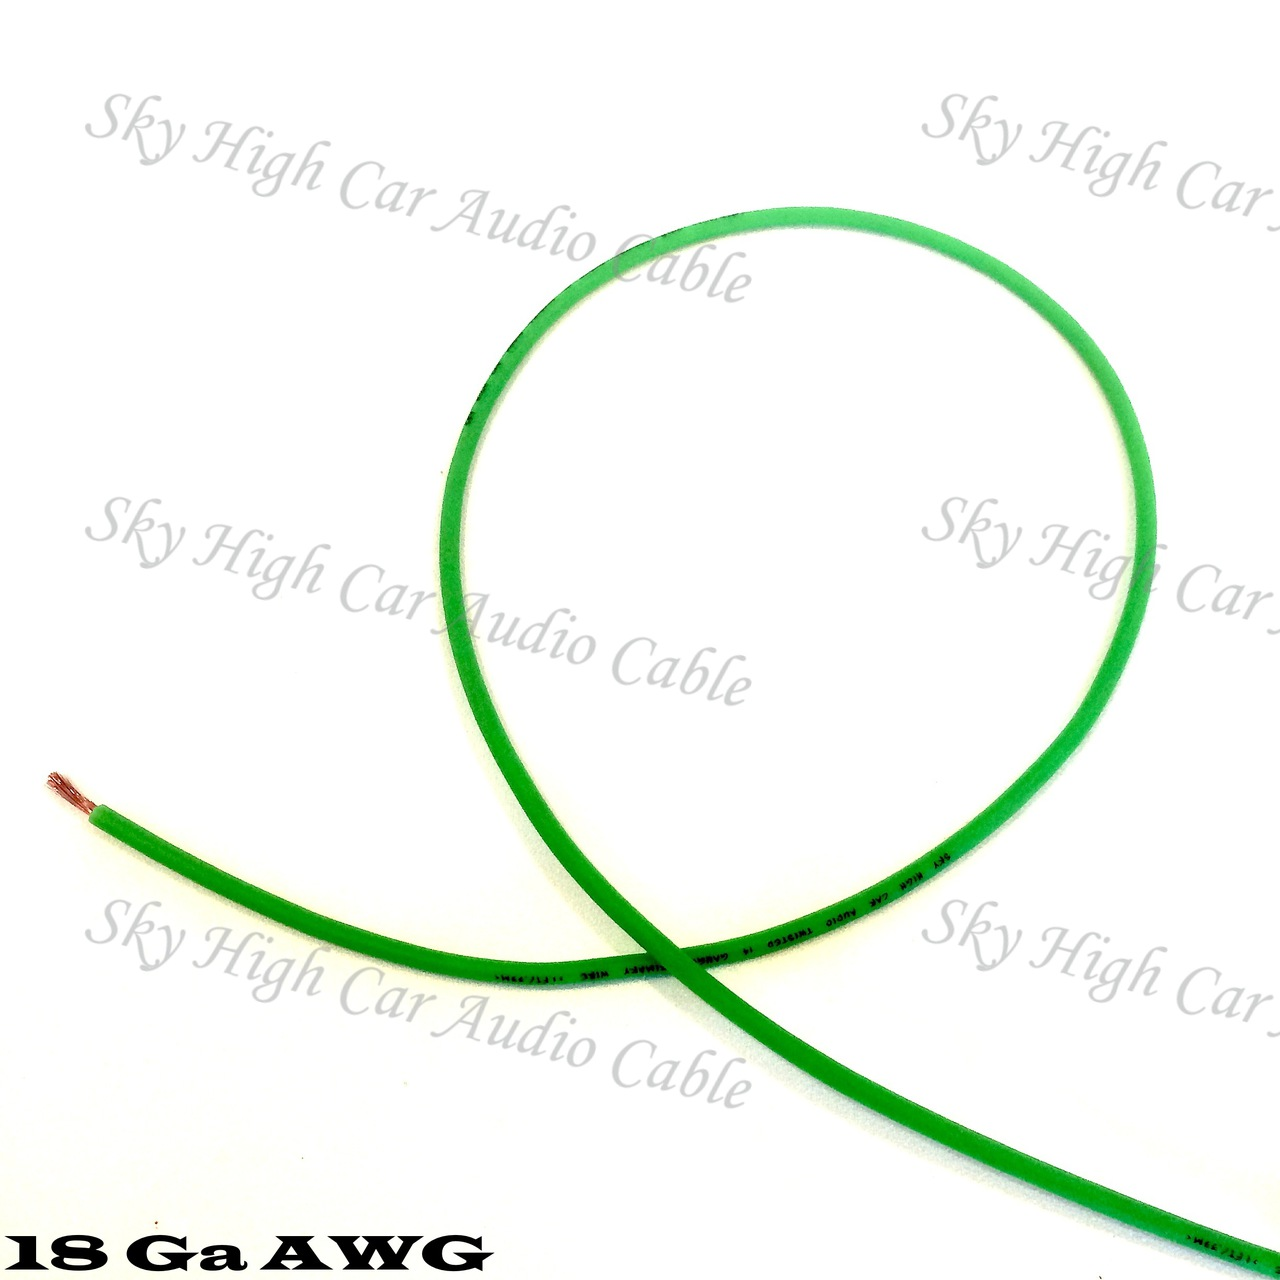 Sky High Car Audio CCA 18 Gauge Primary Wire 100ft-500ft